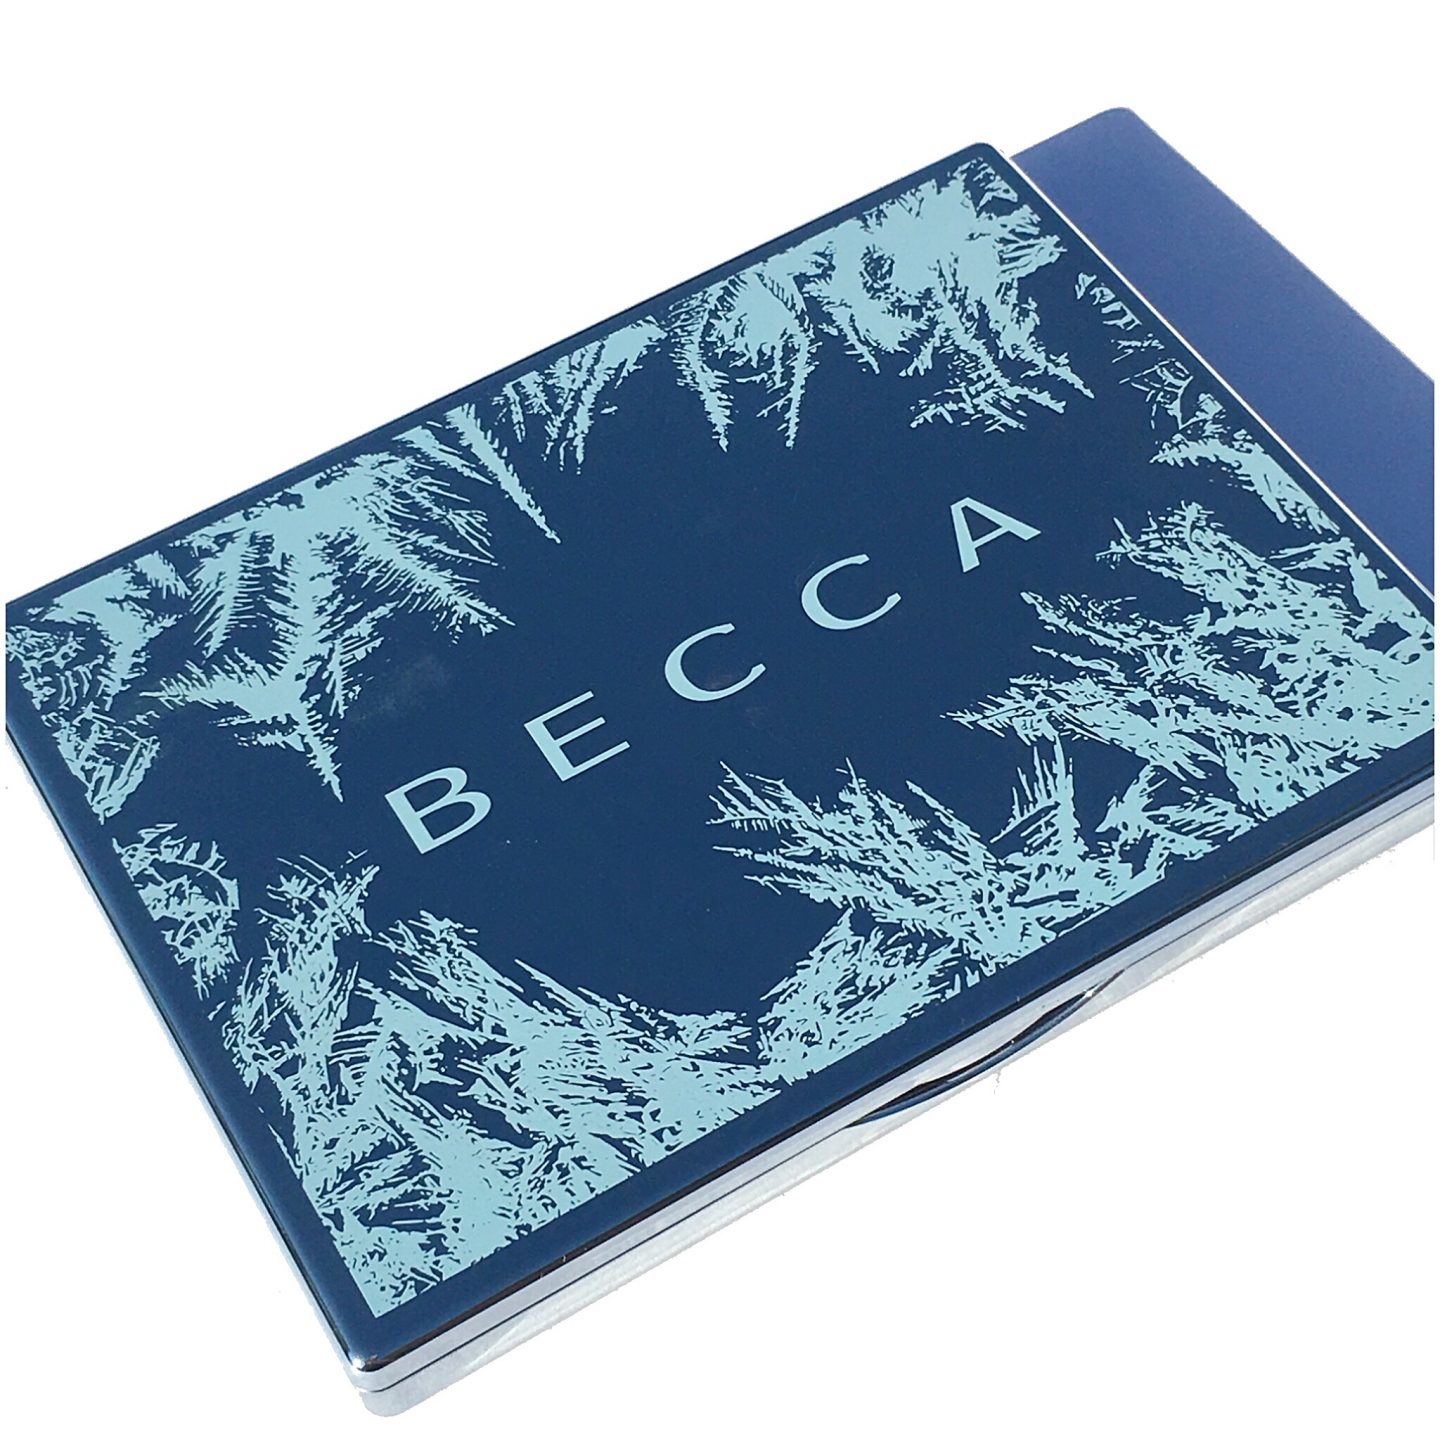 Becca Apres Ski Glow Face Palette Review Amp Swatches Cali